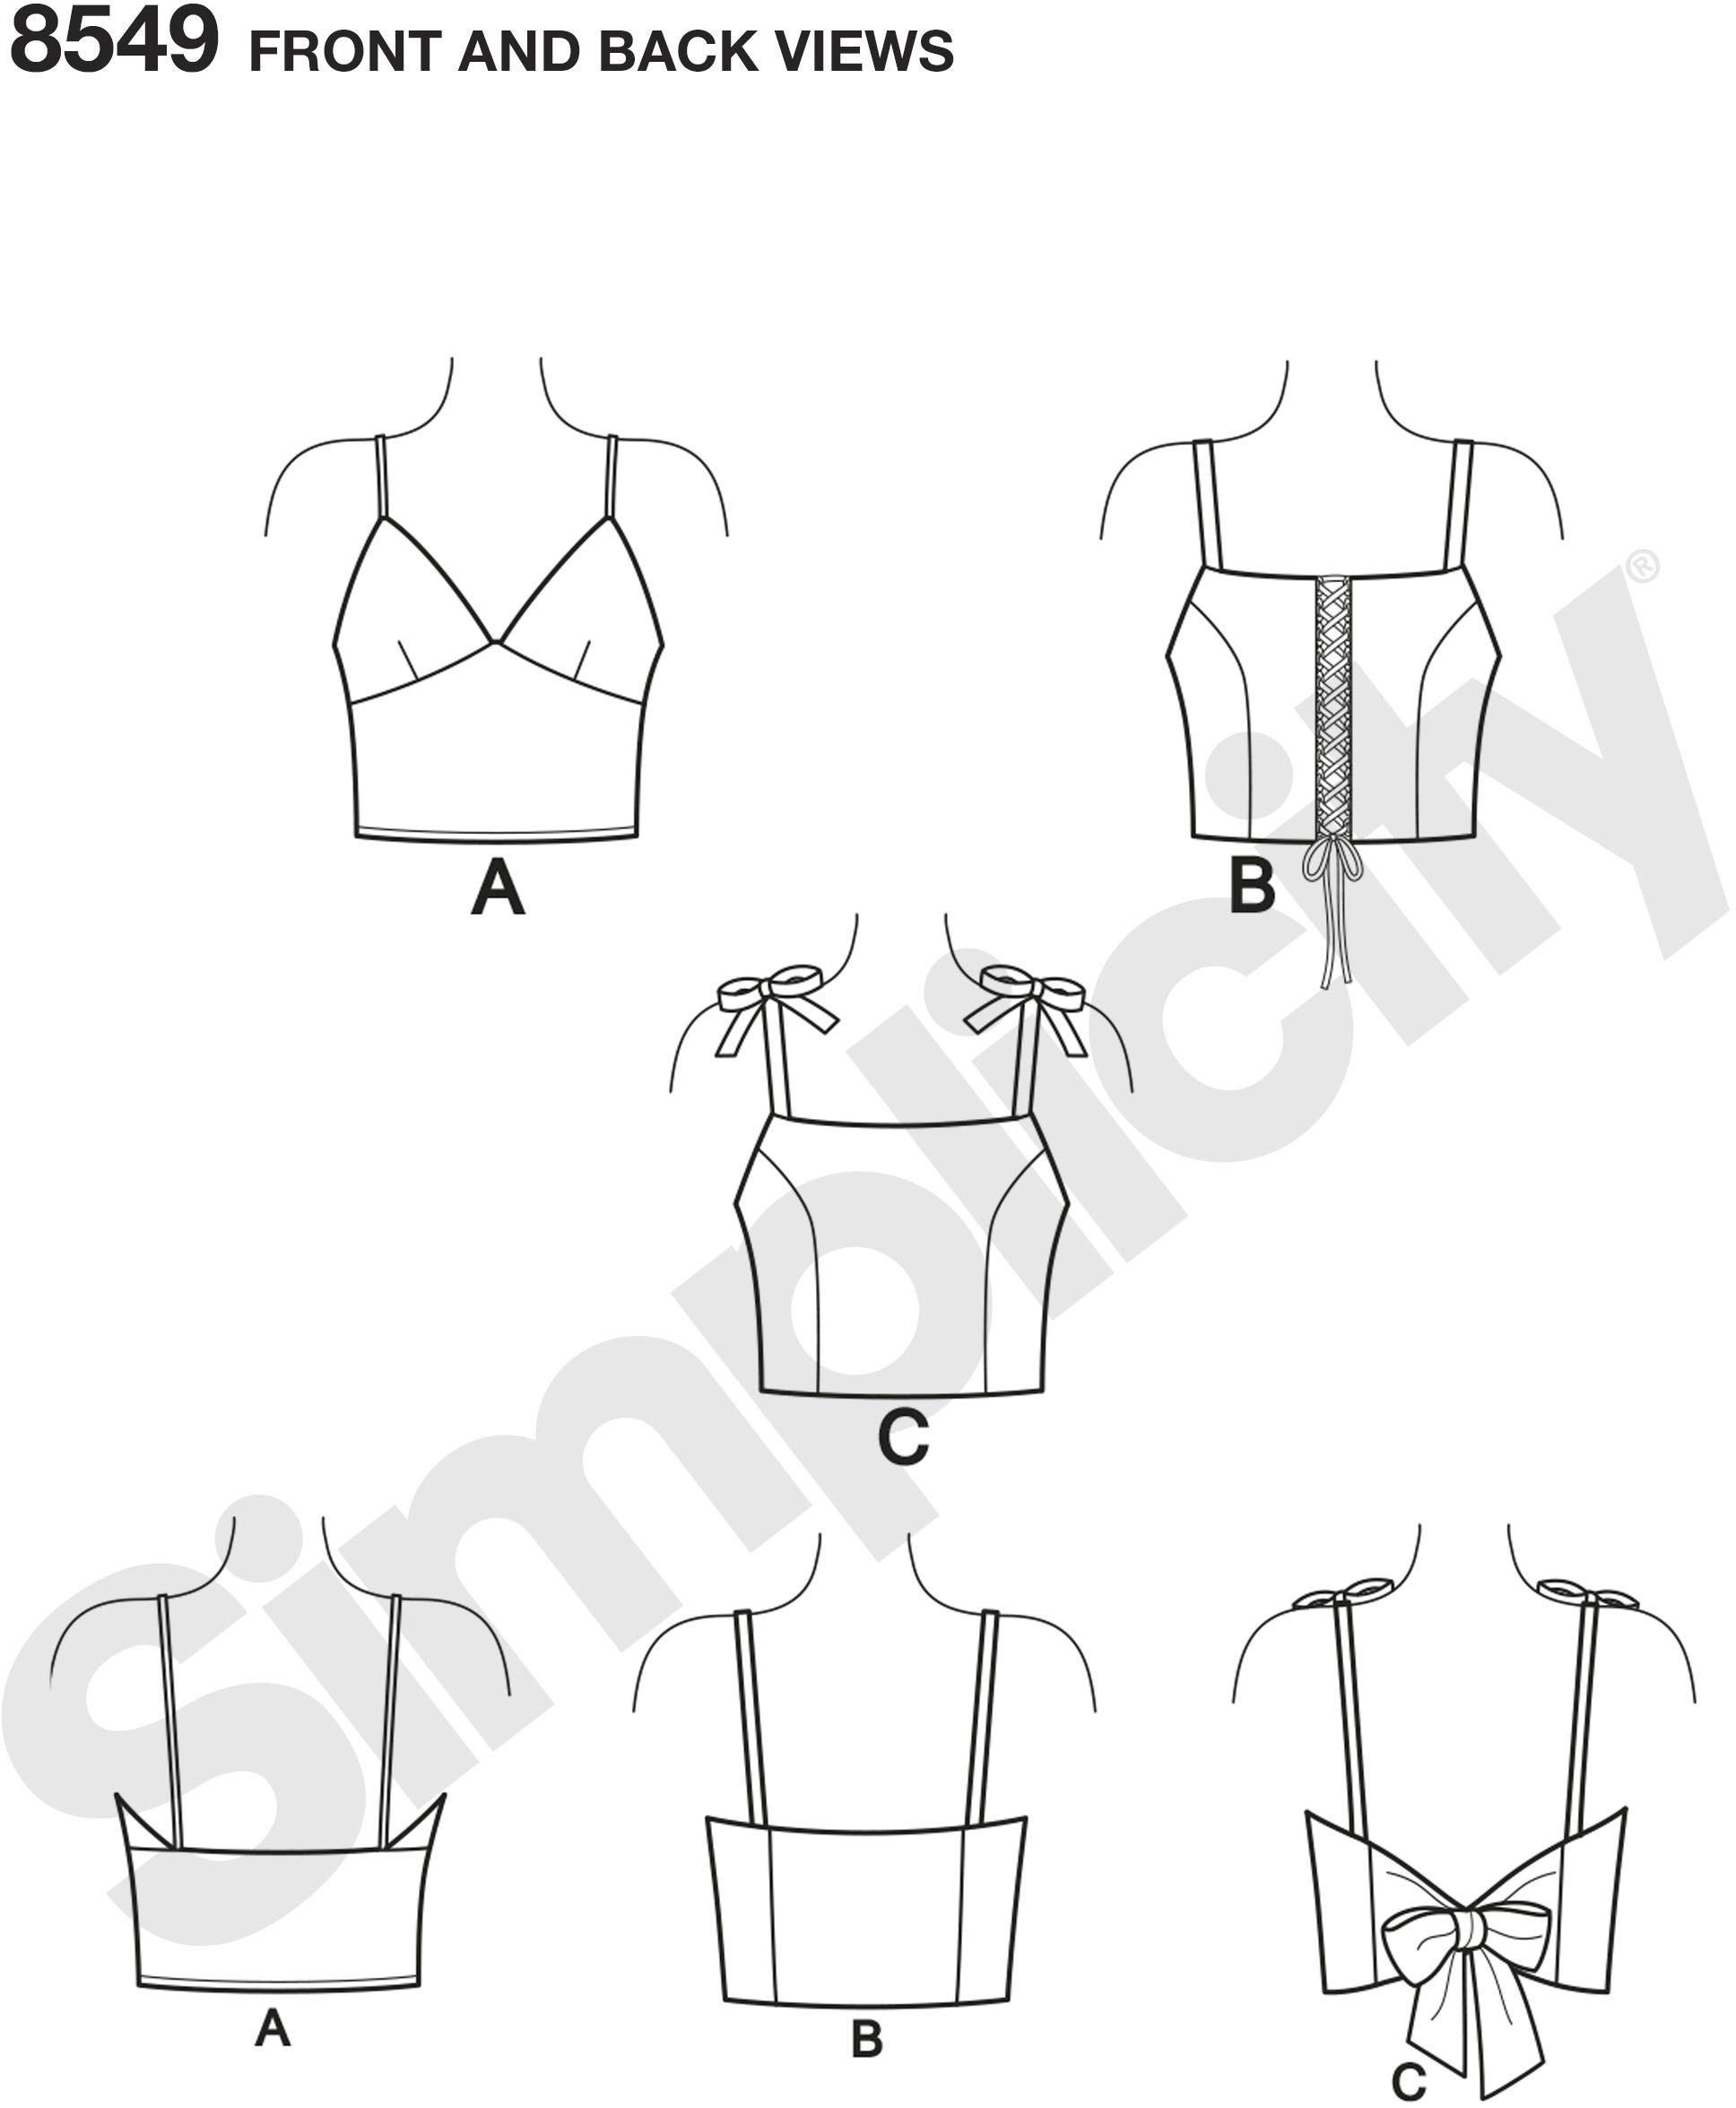 Learn to sew the trends with these knit or woven bra tops by Simplicity. Tops can be worn as a layering piece or simply as a cute crop top. With this pattern and sewing instructions, you will learn to sew a knit or woven bralette, sew with loop trim, make ties, and sew concealed elastic casings.